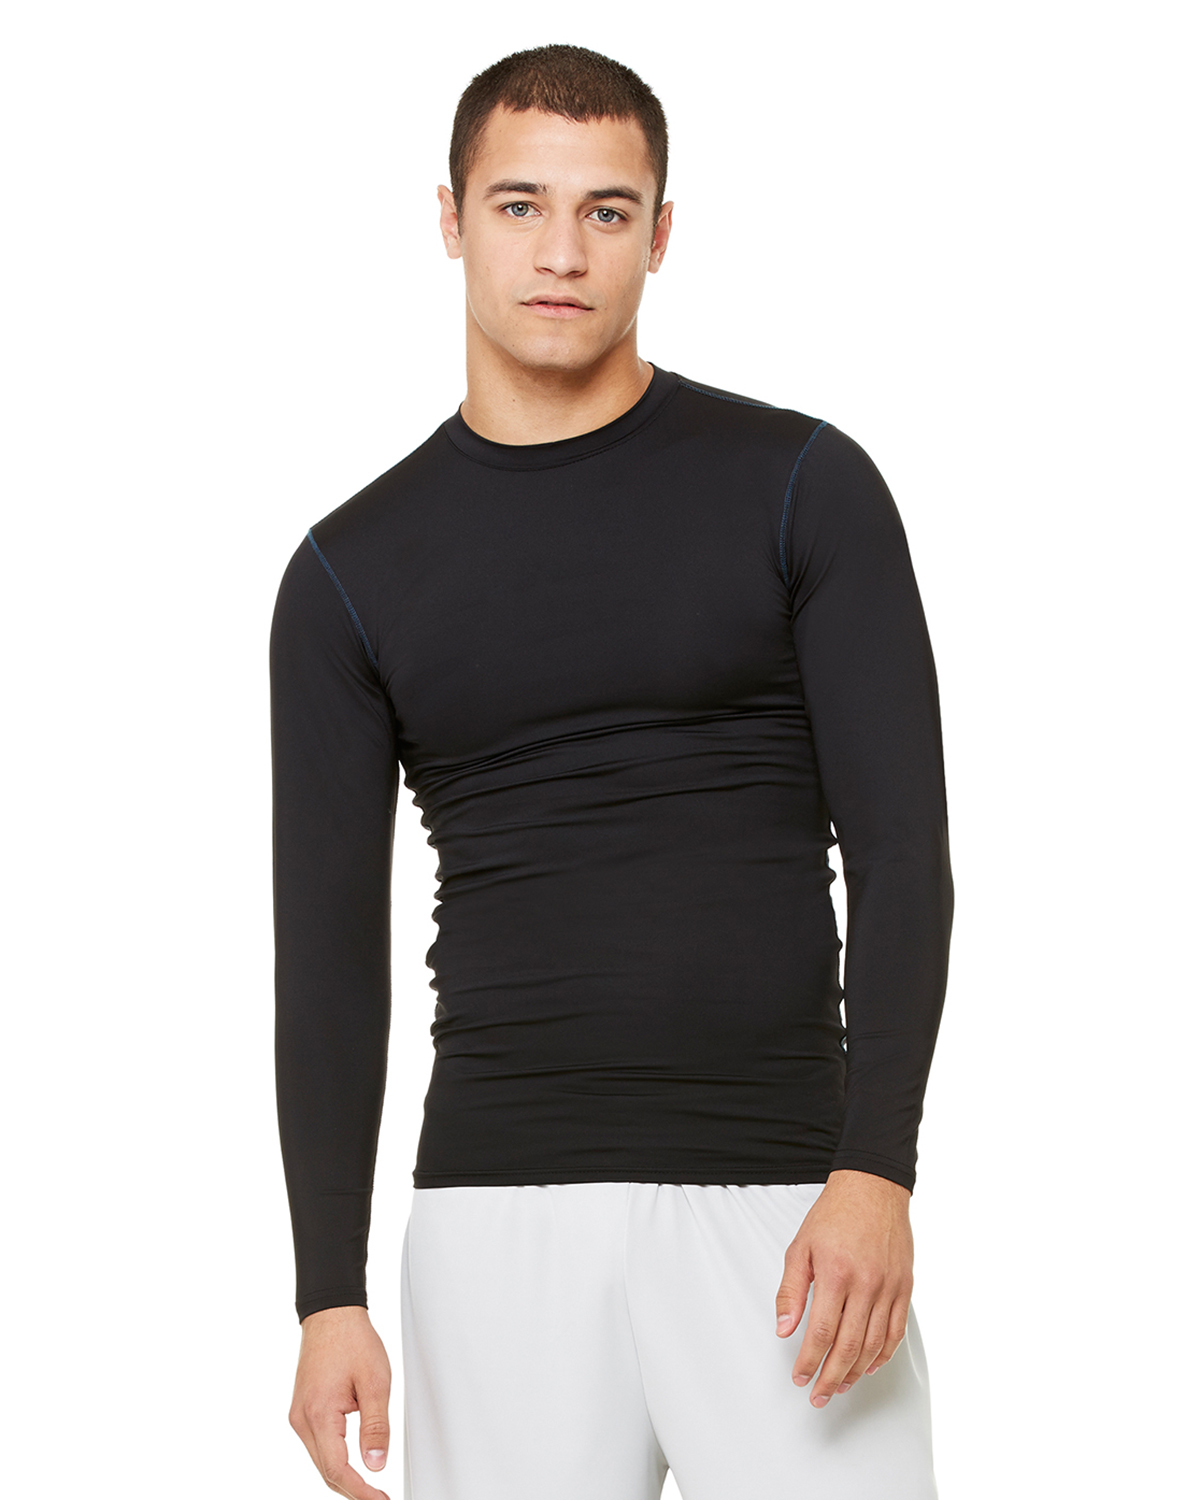 alo M3003 Men's Long Sleeve Compression T-Shirt